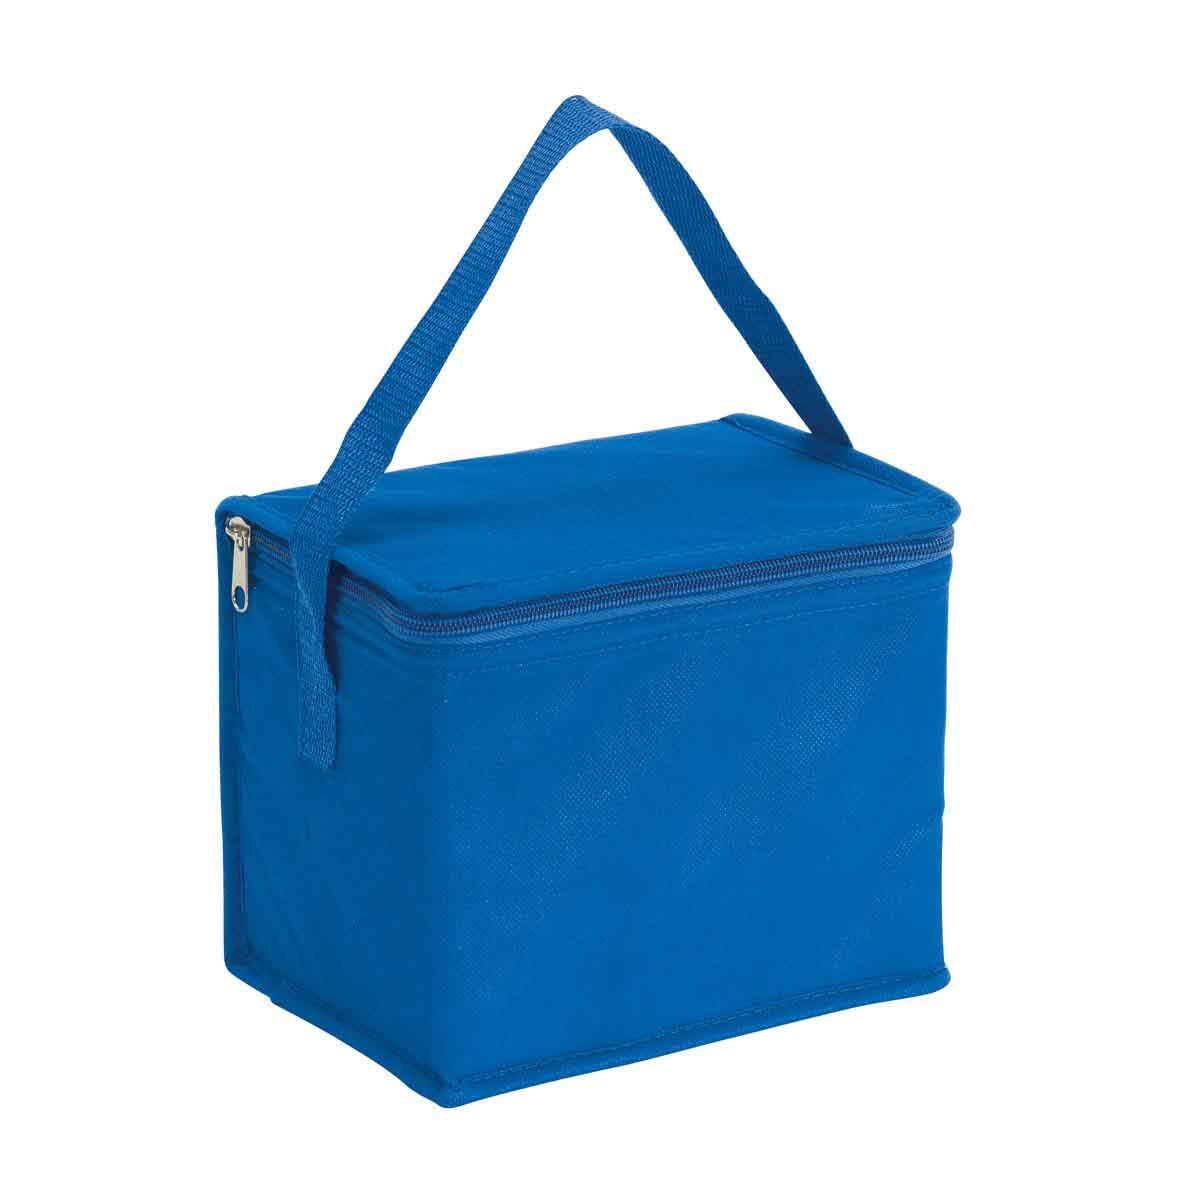 Cooler bag 'Celsius': with insulated zip pocket and carrying handle. - Blue ins-0801130